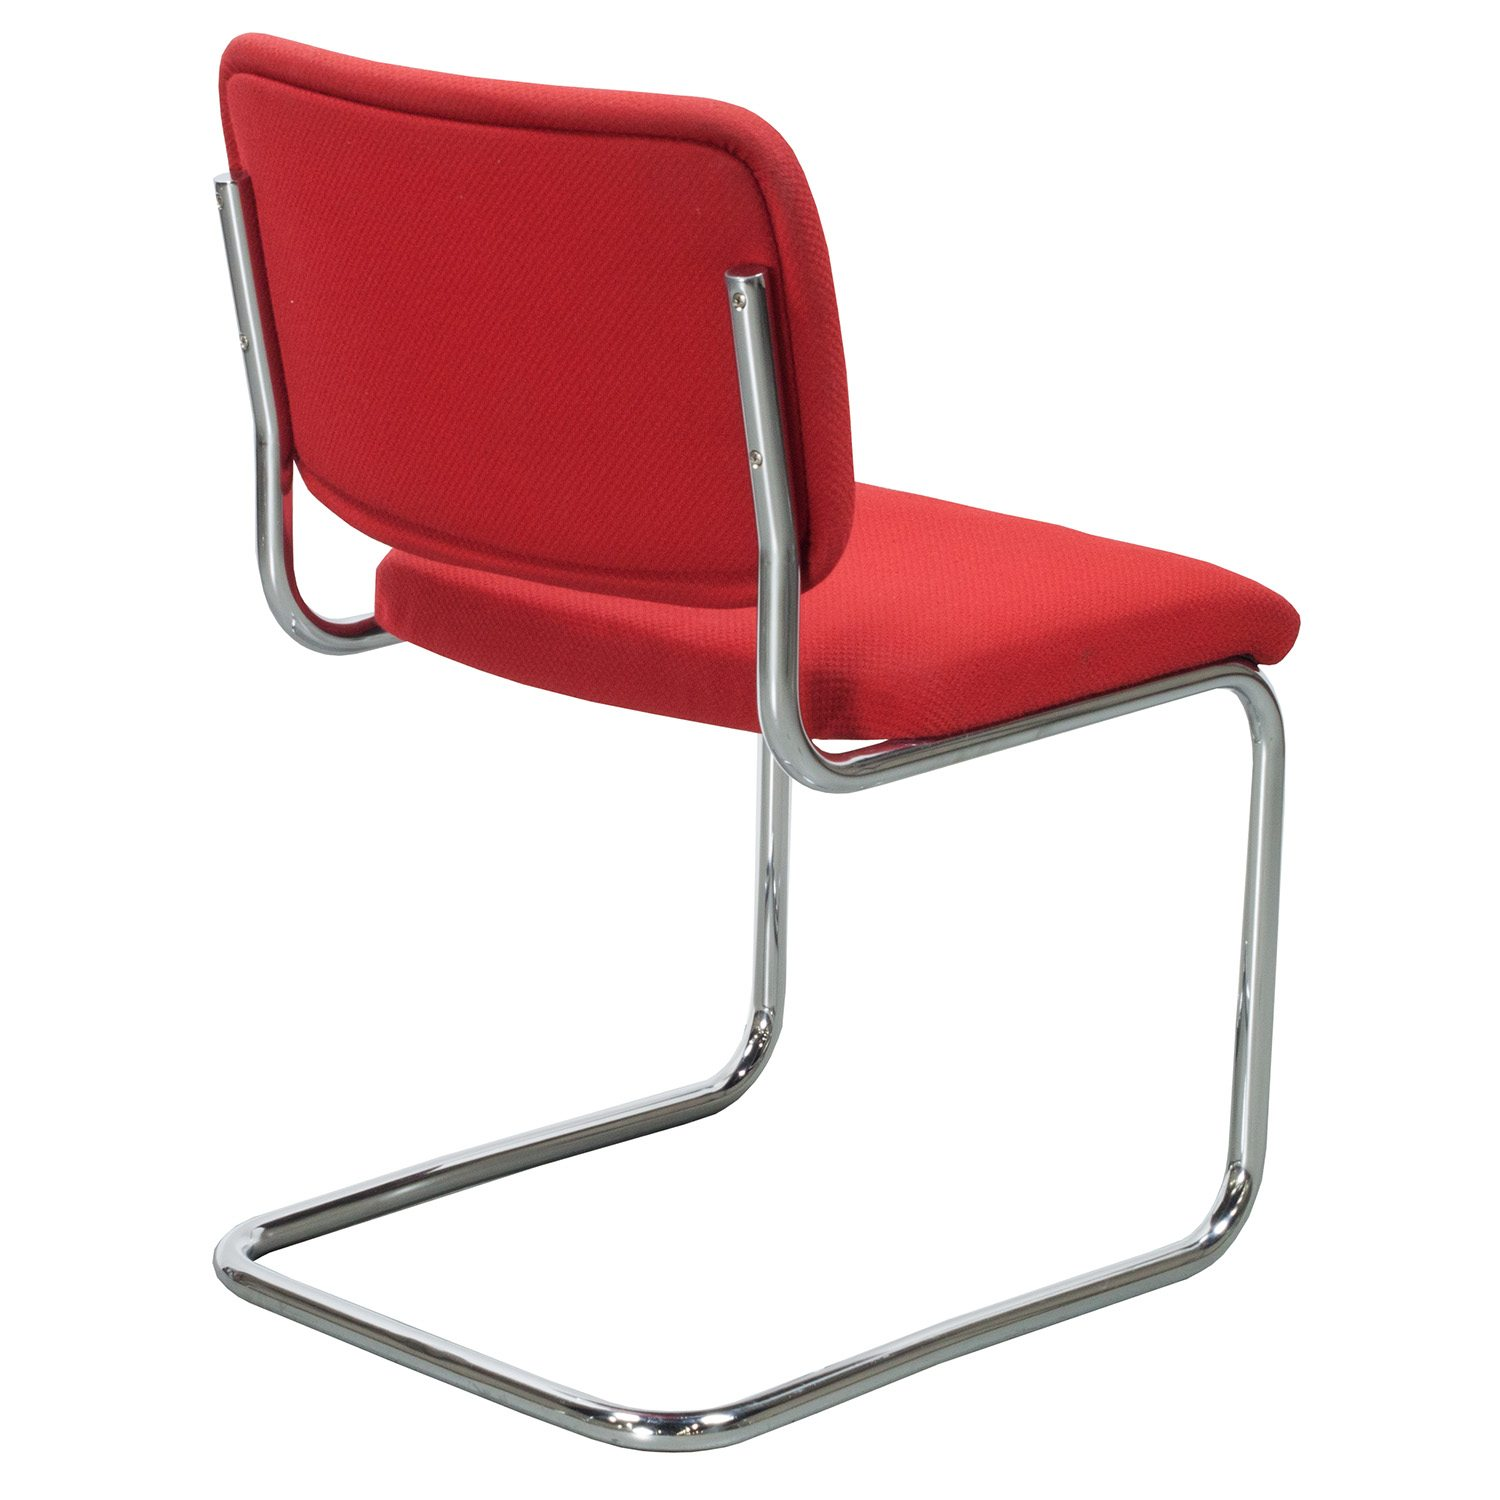 Thonet S32 Thonet S 32 Pv Used Side Chair Red National Office Interiors And Liquidators